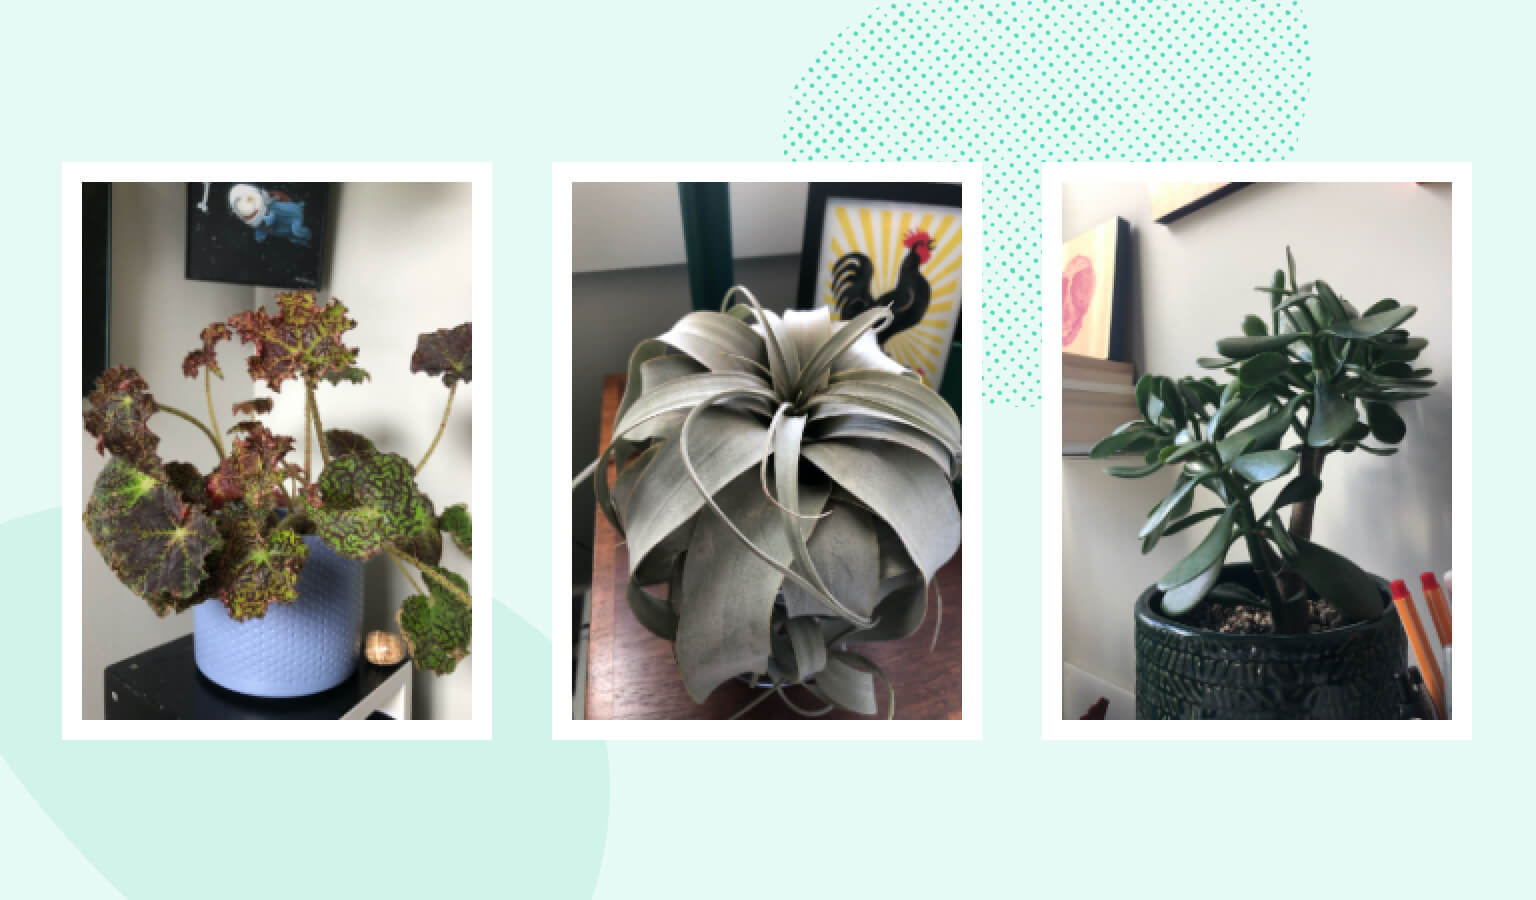 Three individual pictures featuring a rex begonia, air plant, and jade plant in a home office setting.